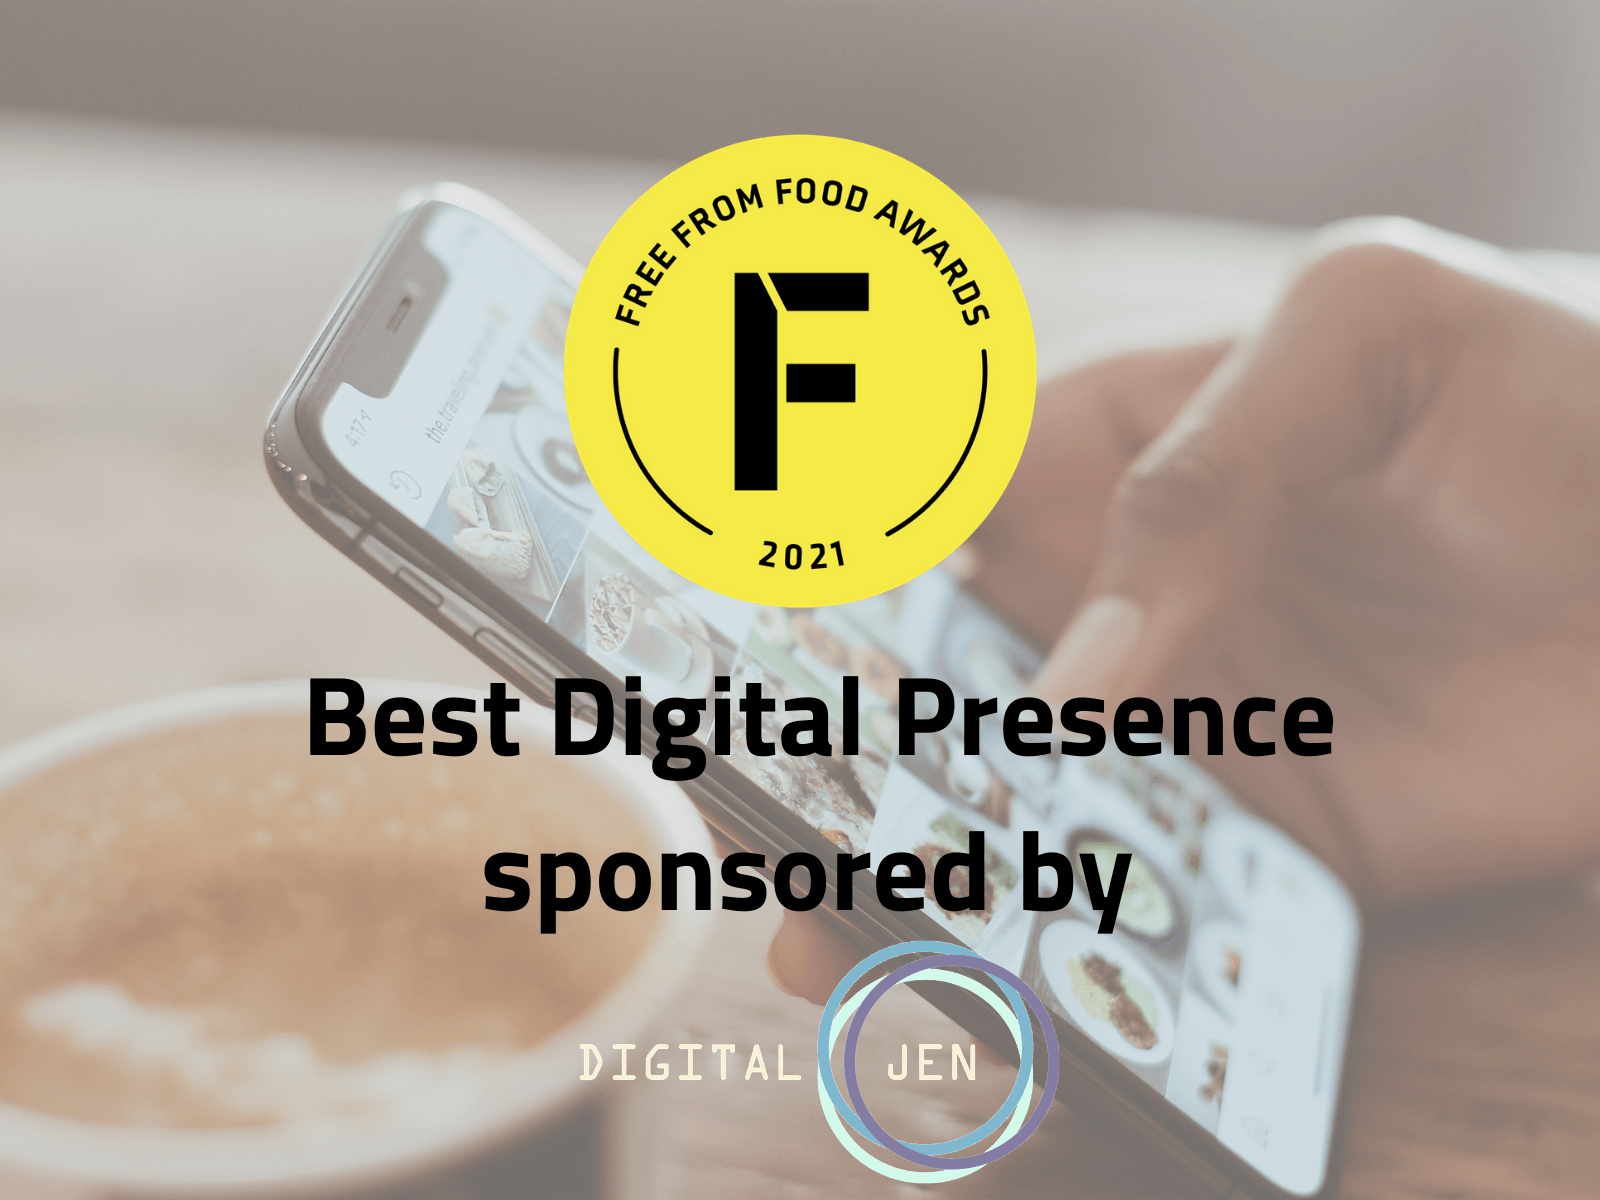 freefrom food awards, digital presence, digitaljen